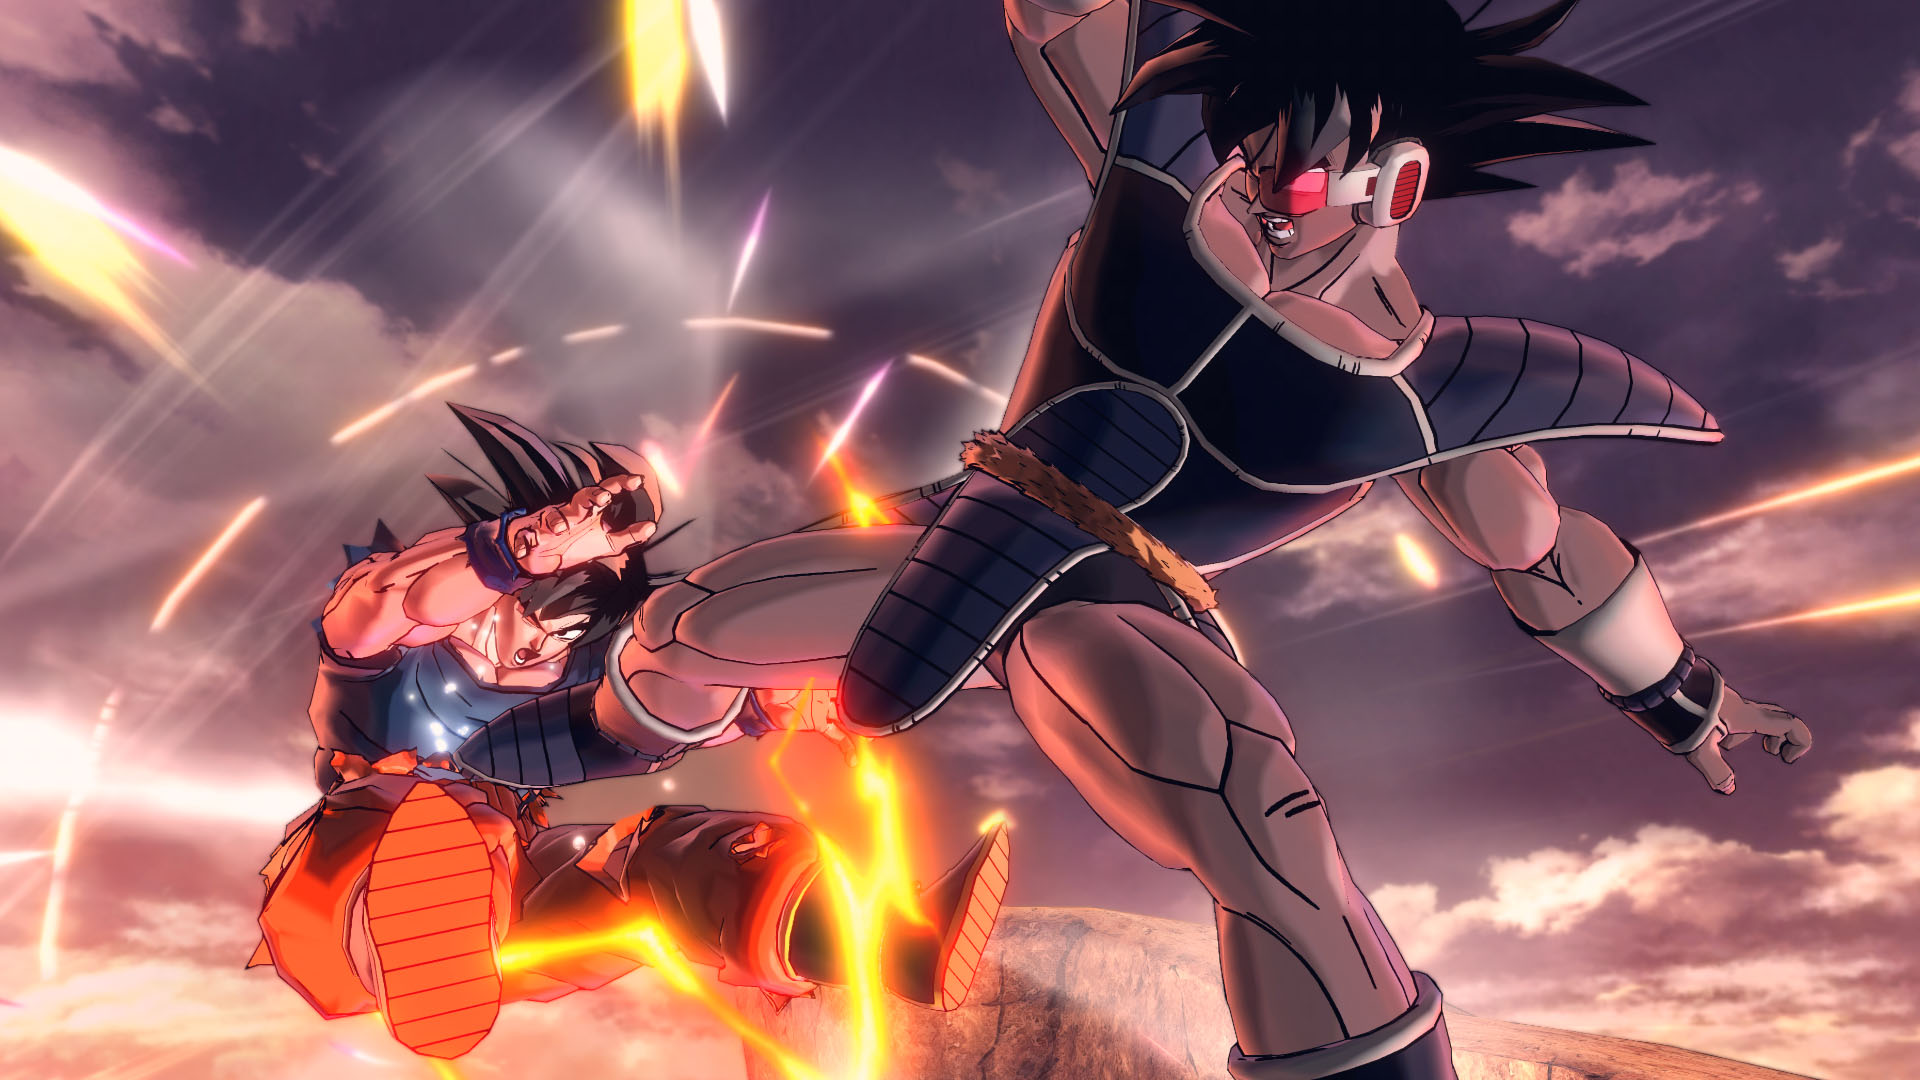 download dragon ball xenoverse 2 v1.07.00 + 10 dlcs repack fitgirl singlelink iso rar part google drive direct link uptobox fpt link magnet torrent thepiratebay kickass alternative